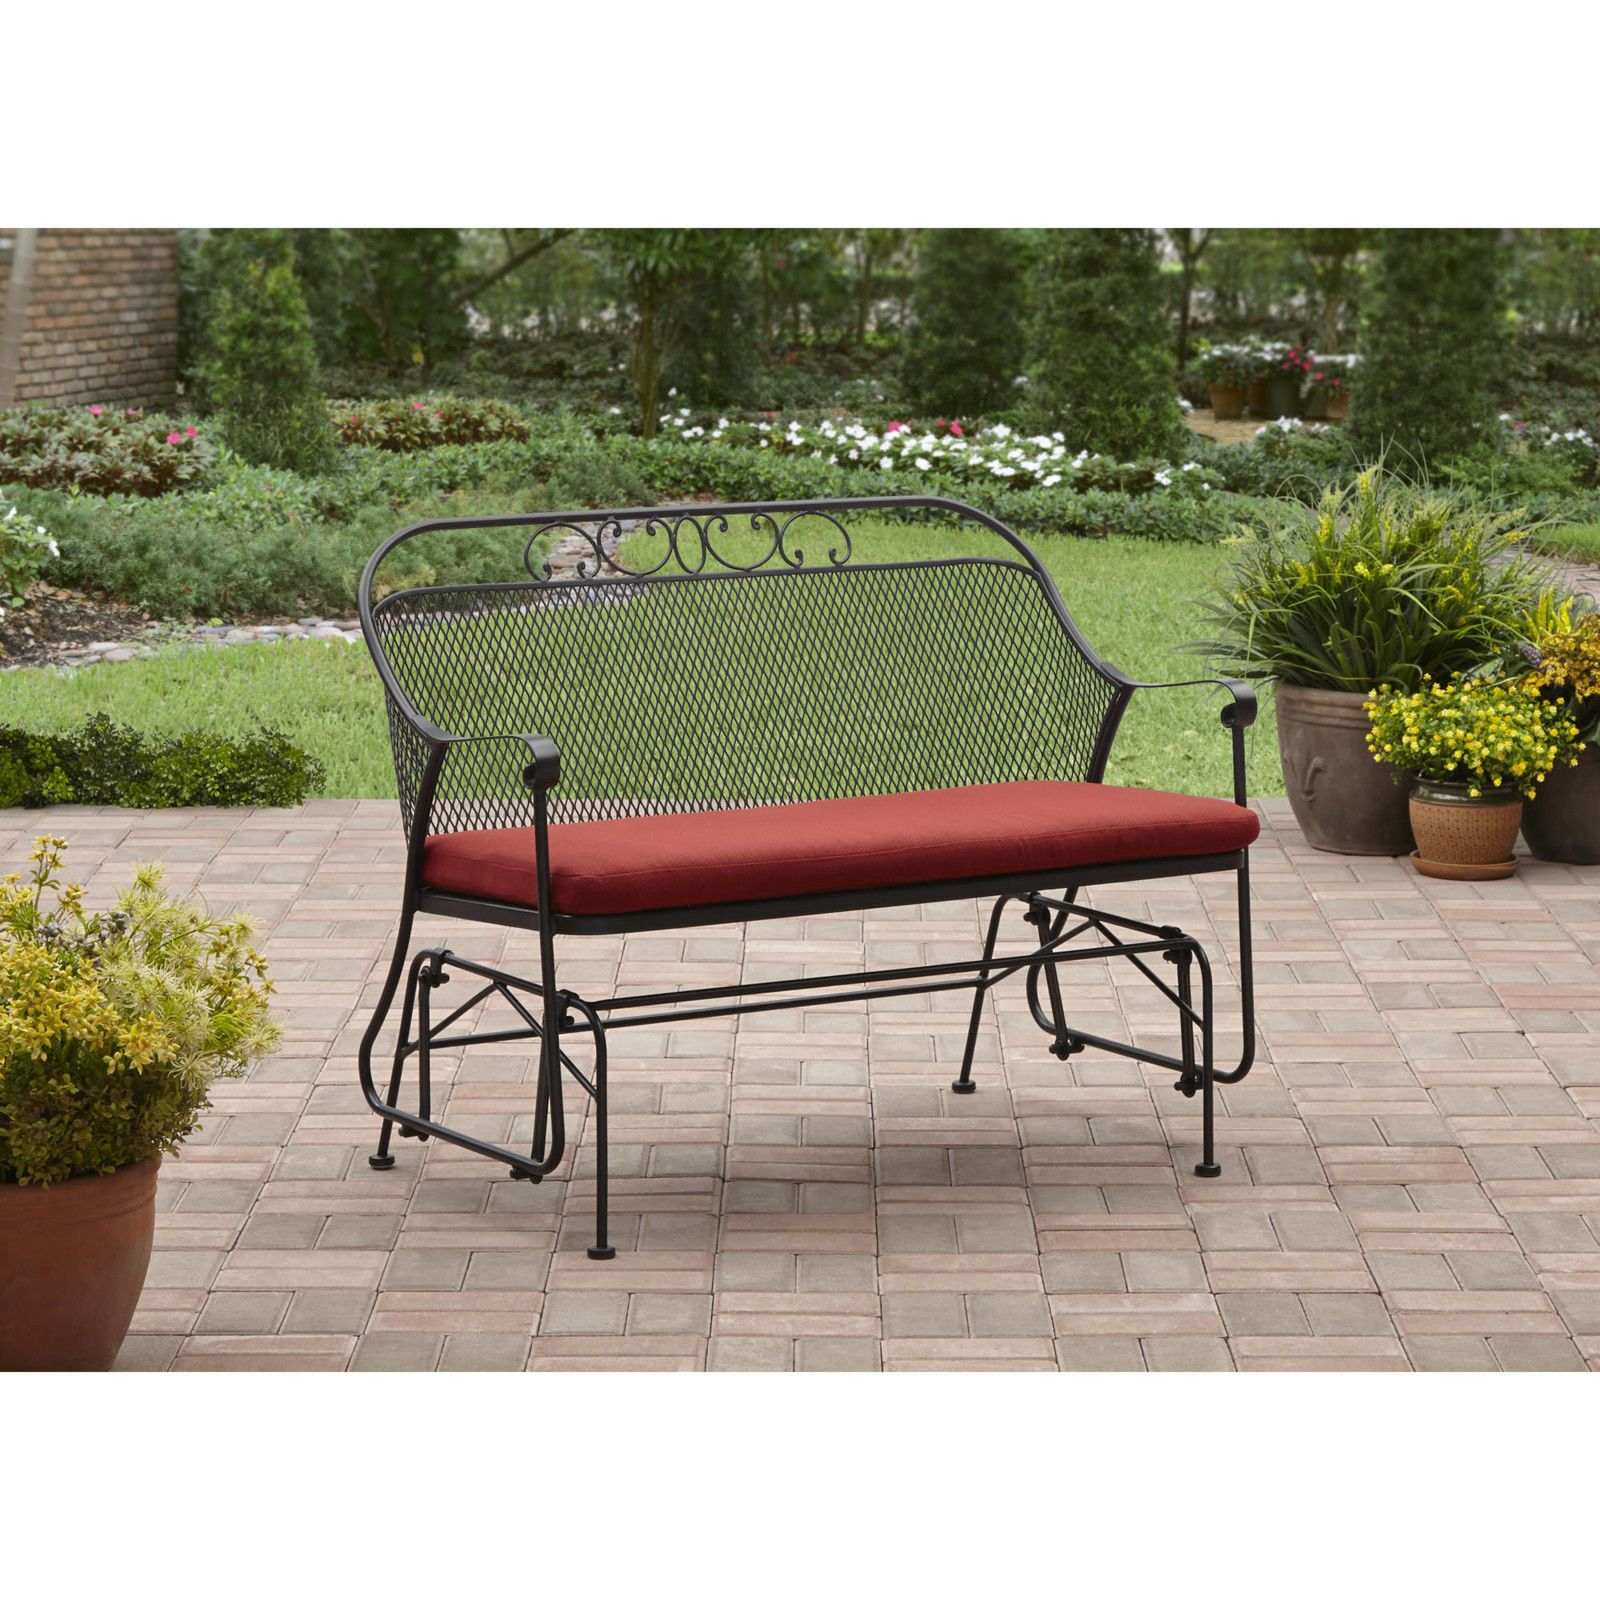 Outdoor Garden Bench Patio Glider Seat Wrought Iron Metal Furniture Front Porch